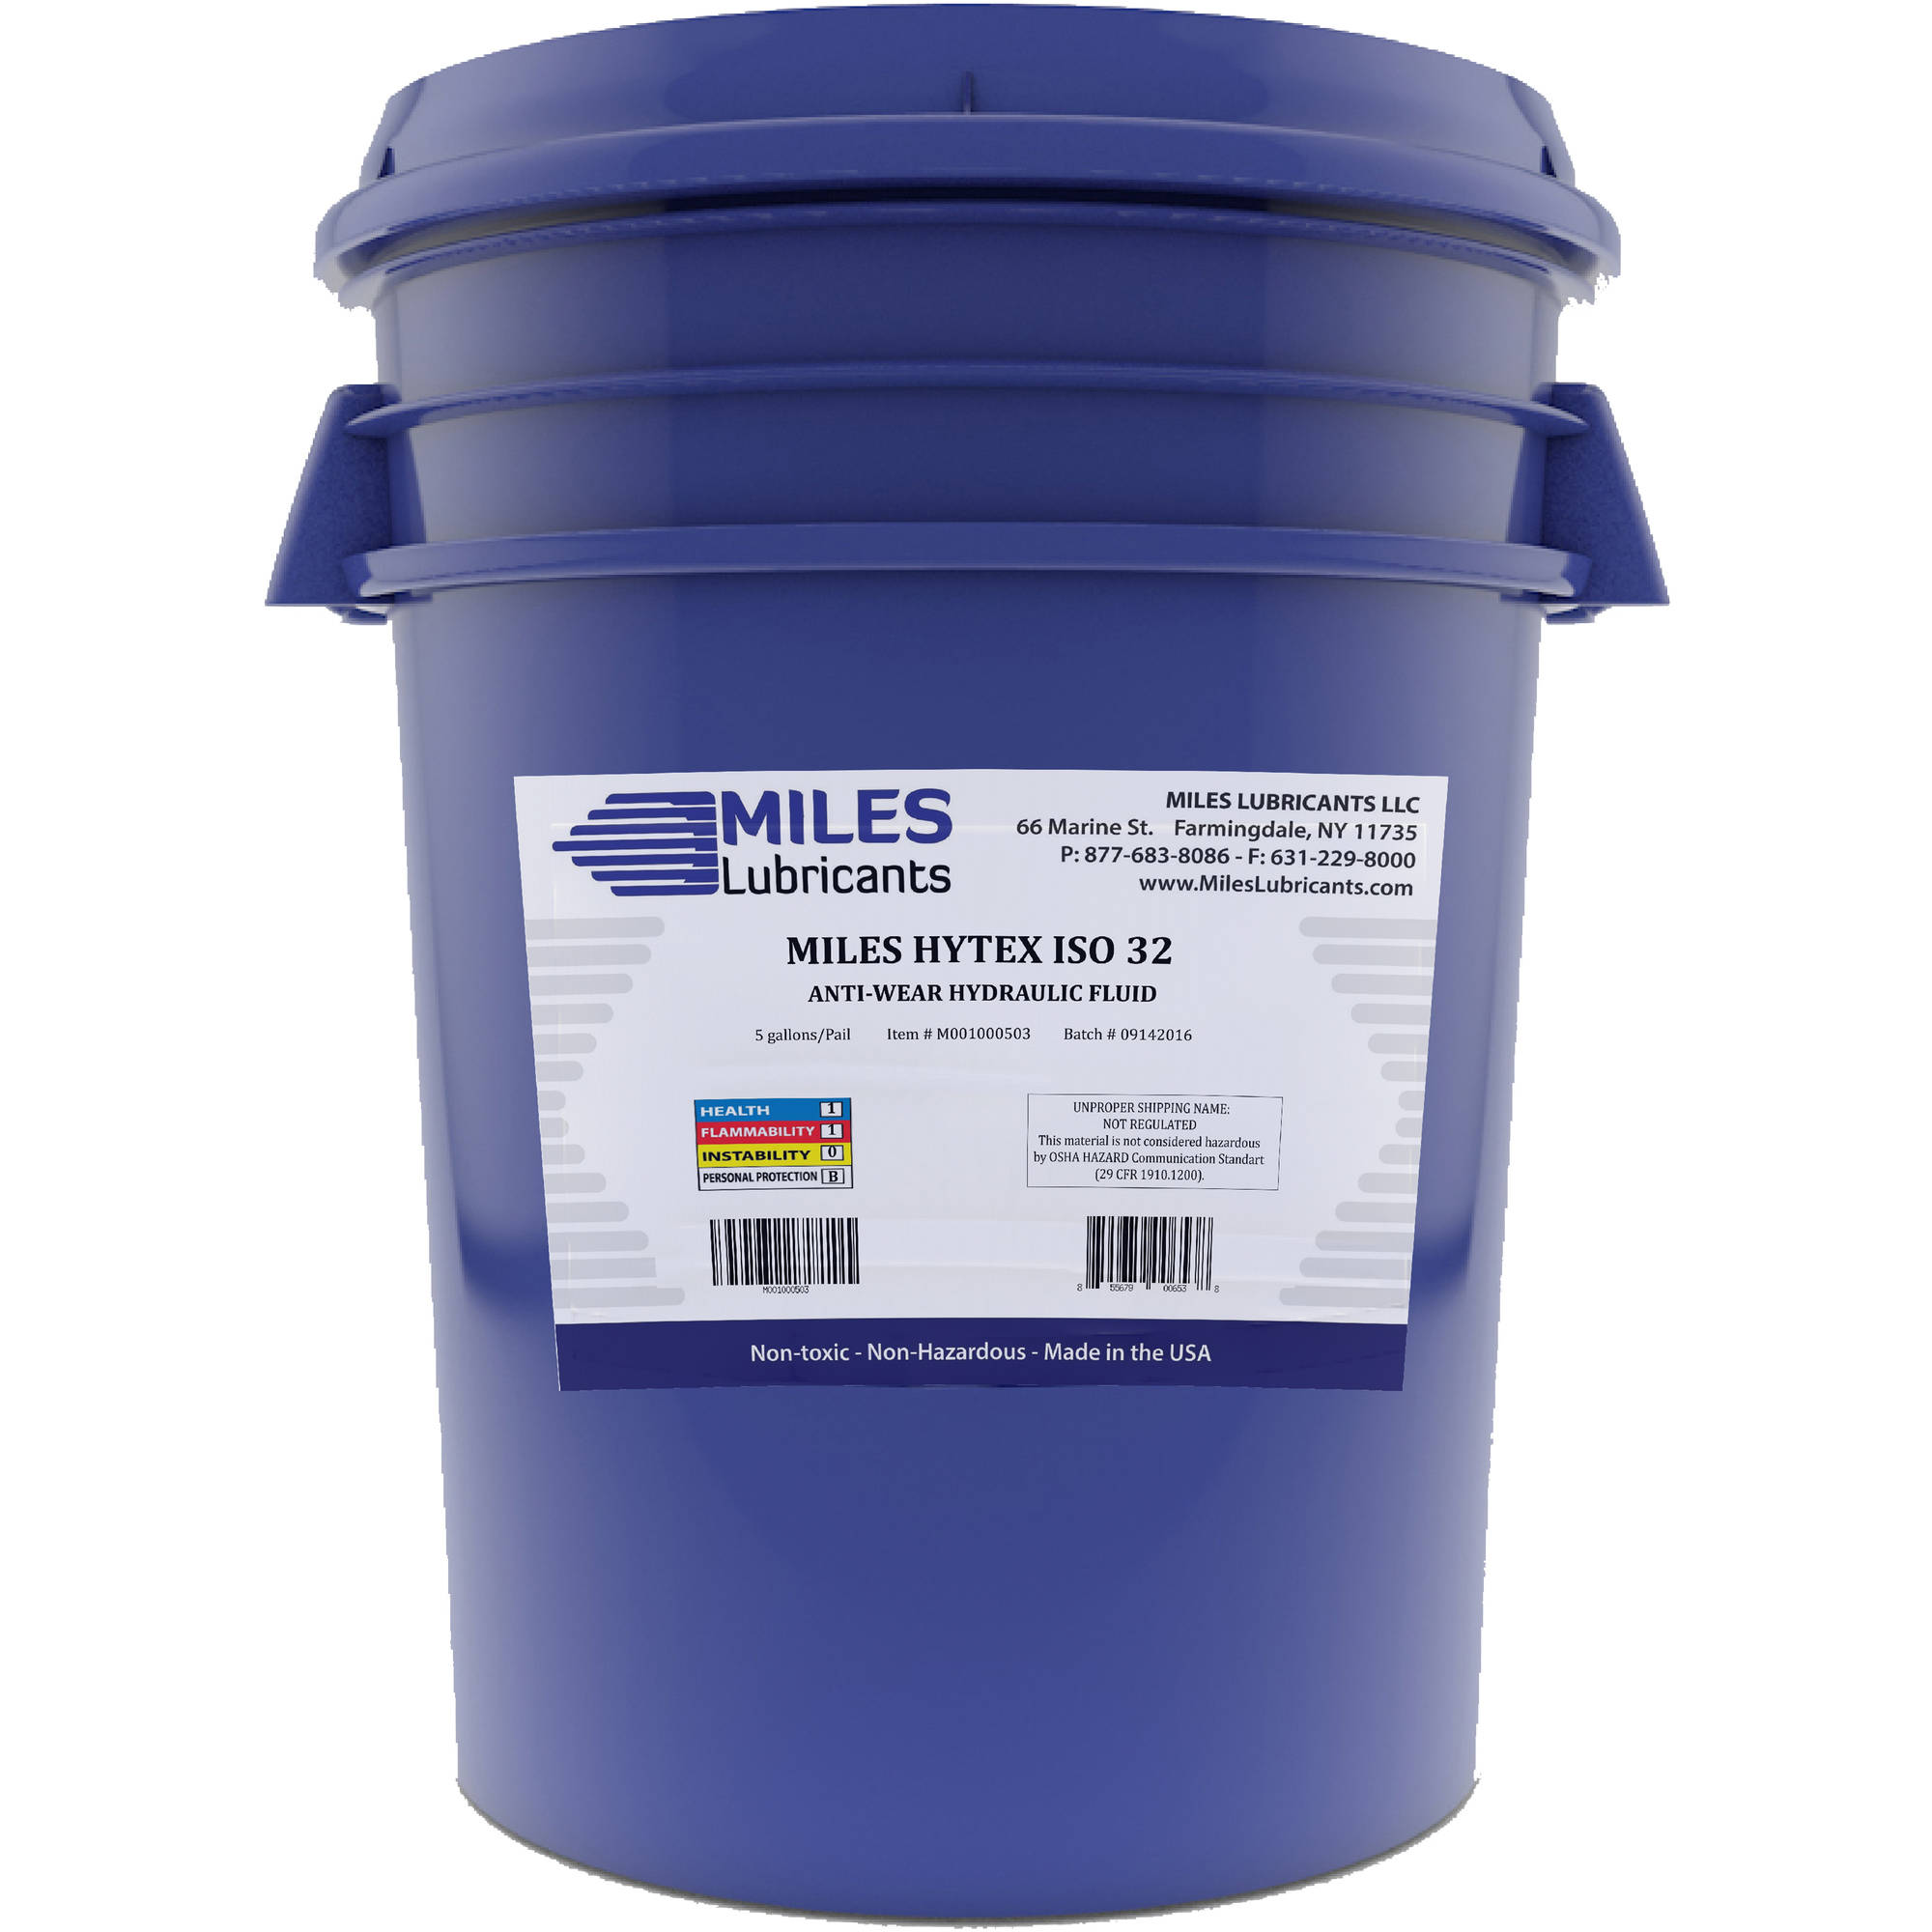 Miles Hytex, 32 Anti-Wear Hydraulic Fluid, 5-Gallon Pail